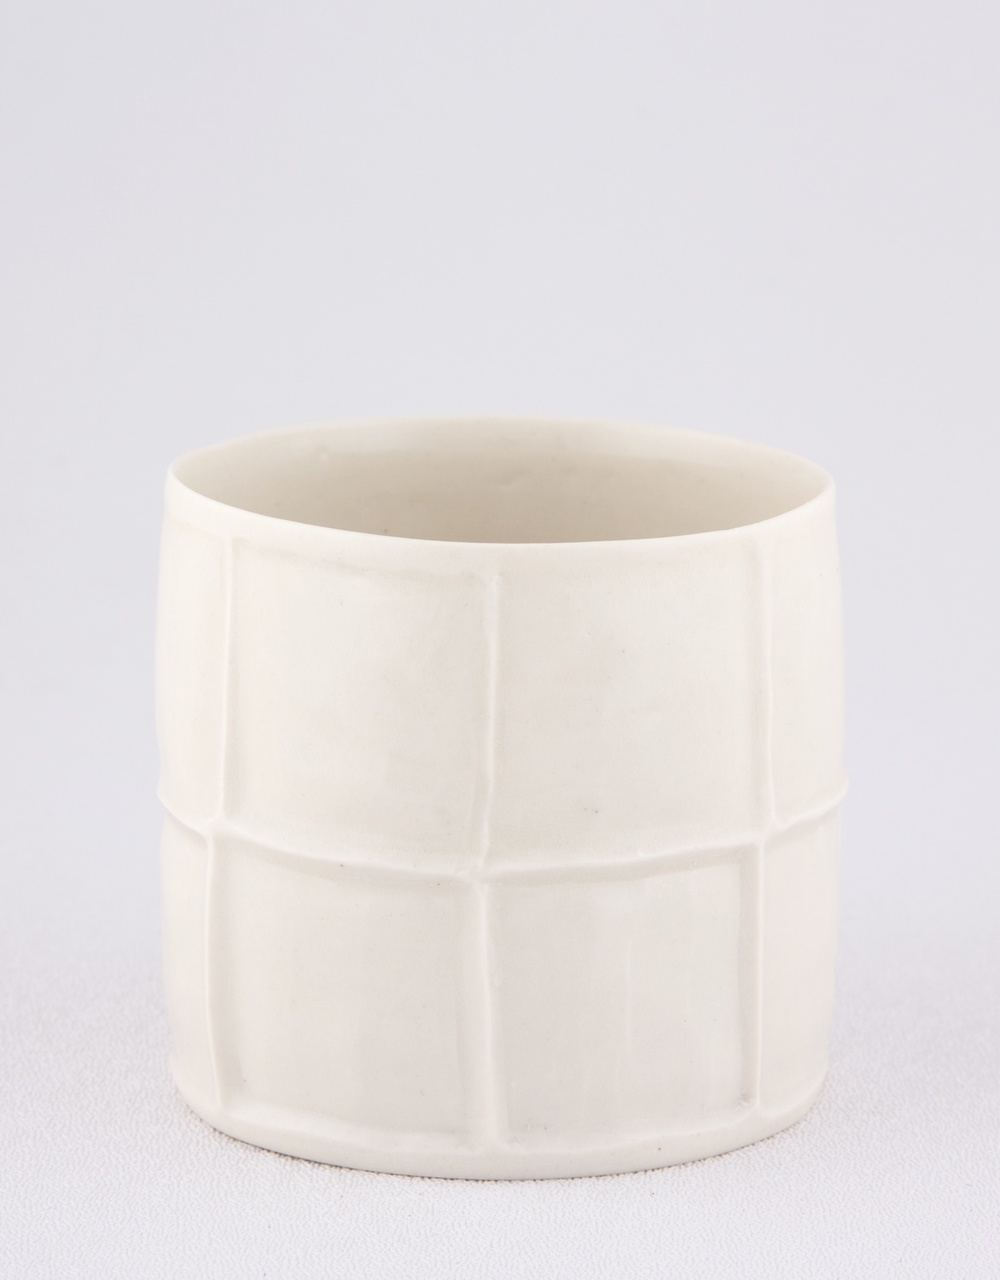 Shio Kusaka  Untitled (cup)  2009 Porcelain 2 ¾h x 3w in SK014